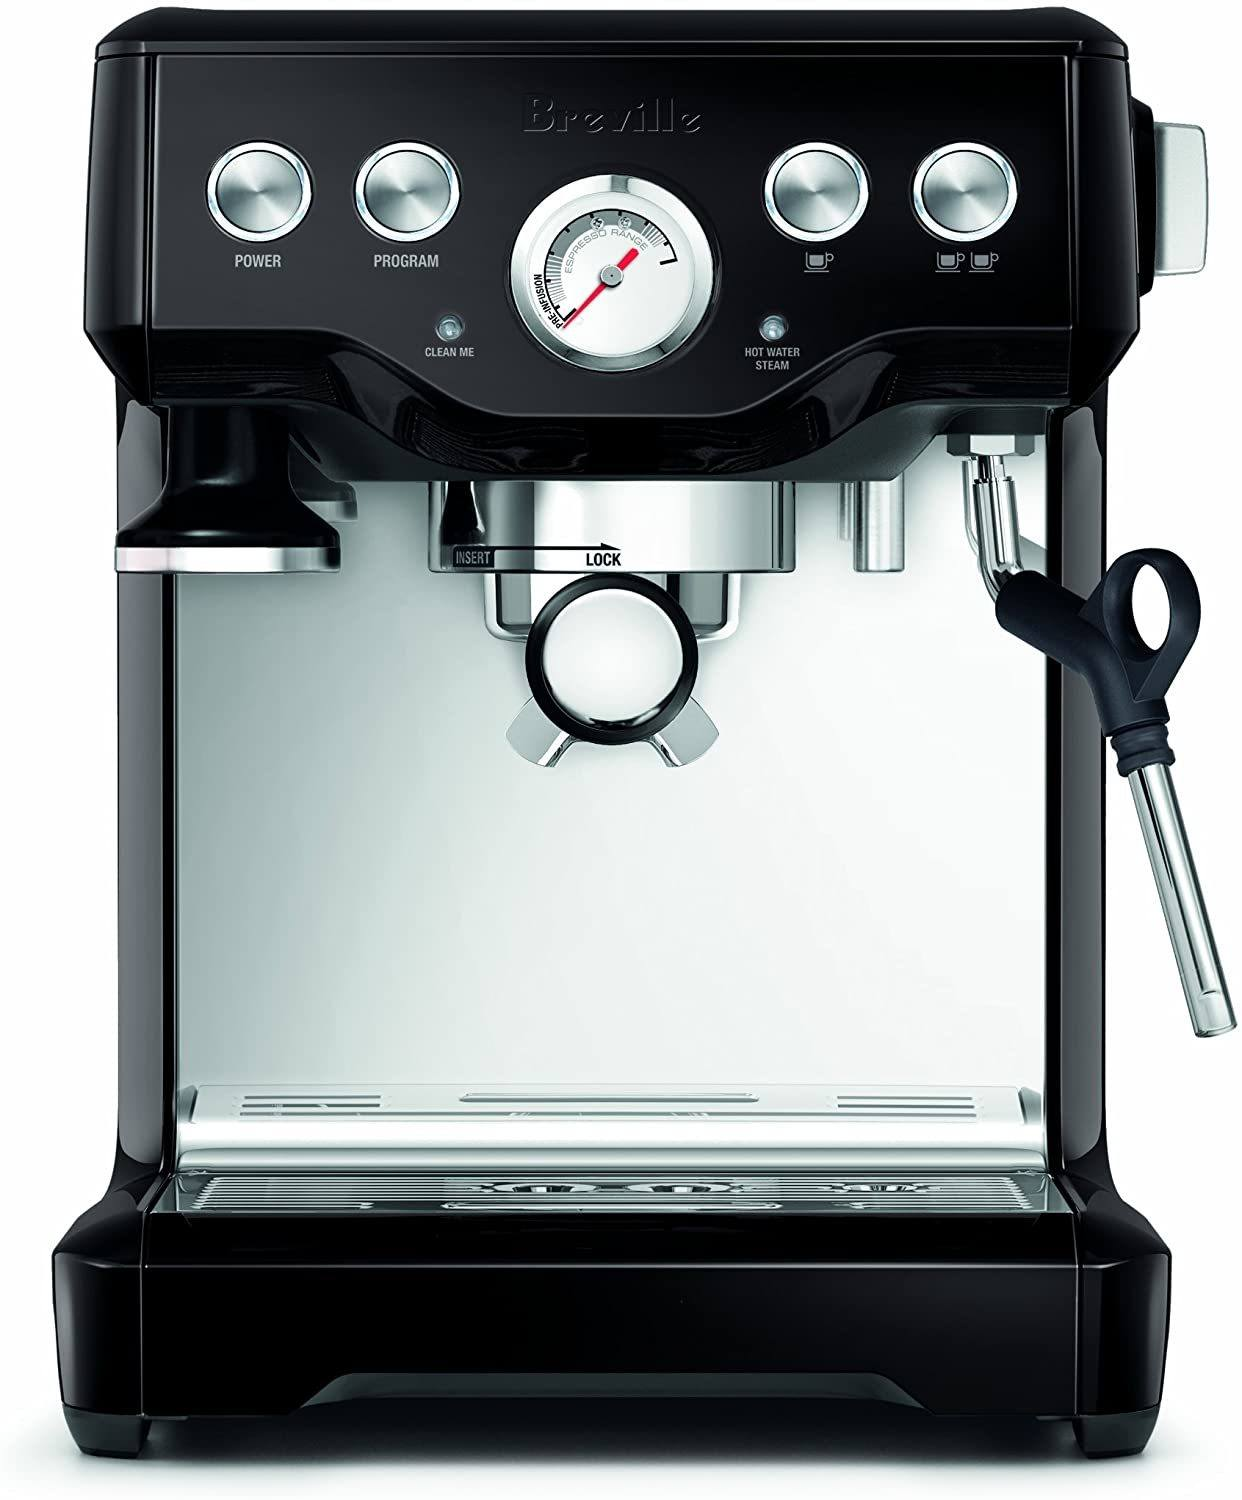 Breville BES840BSXL The Infuser Espresso Machine